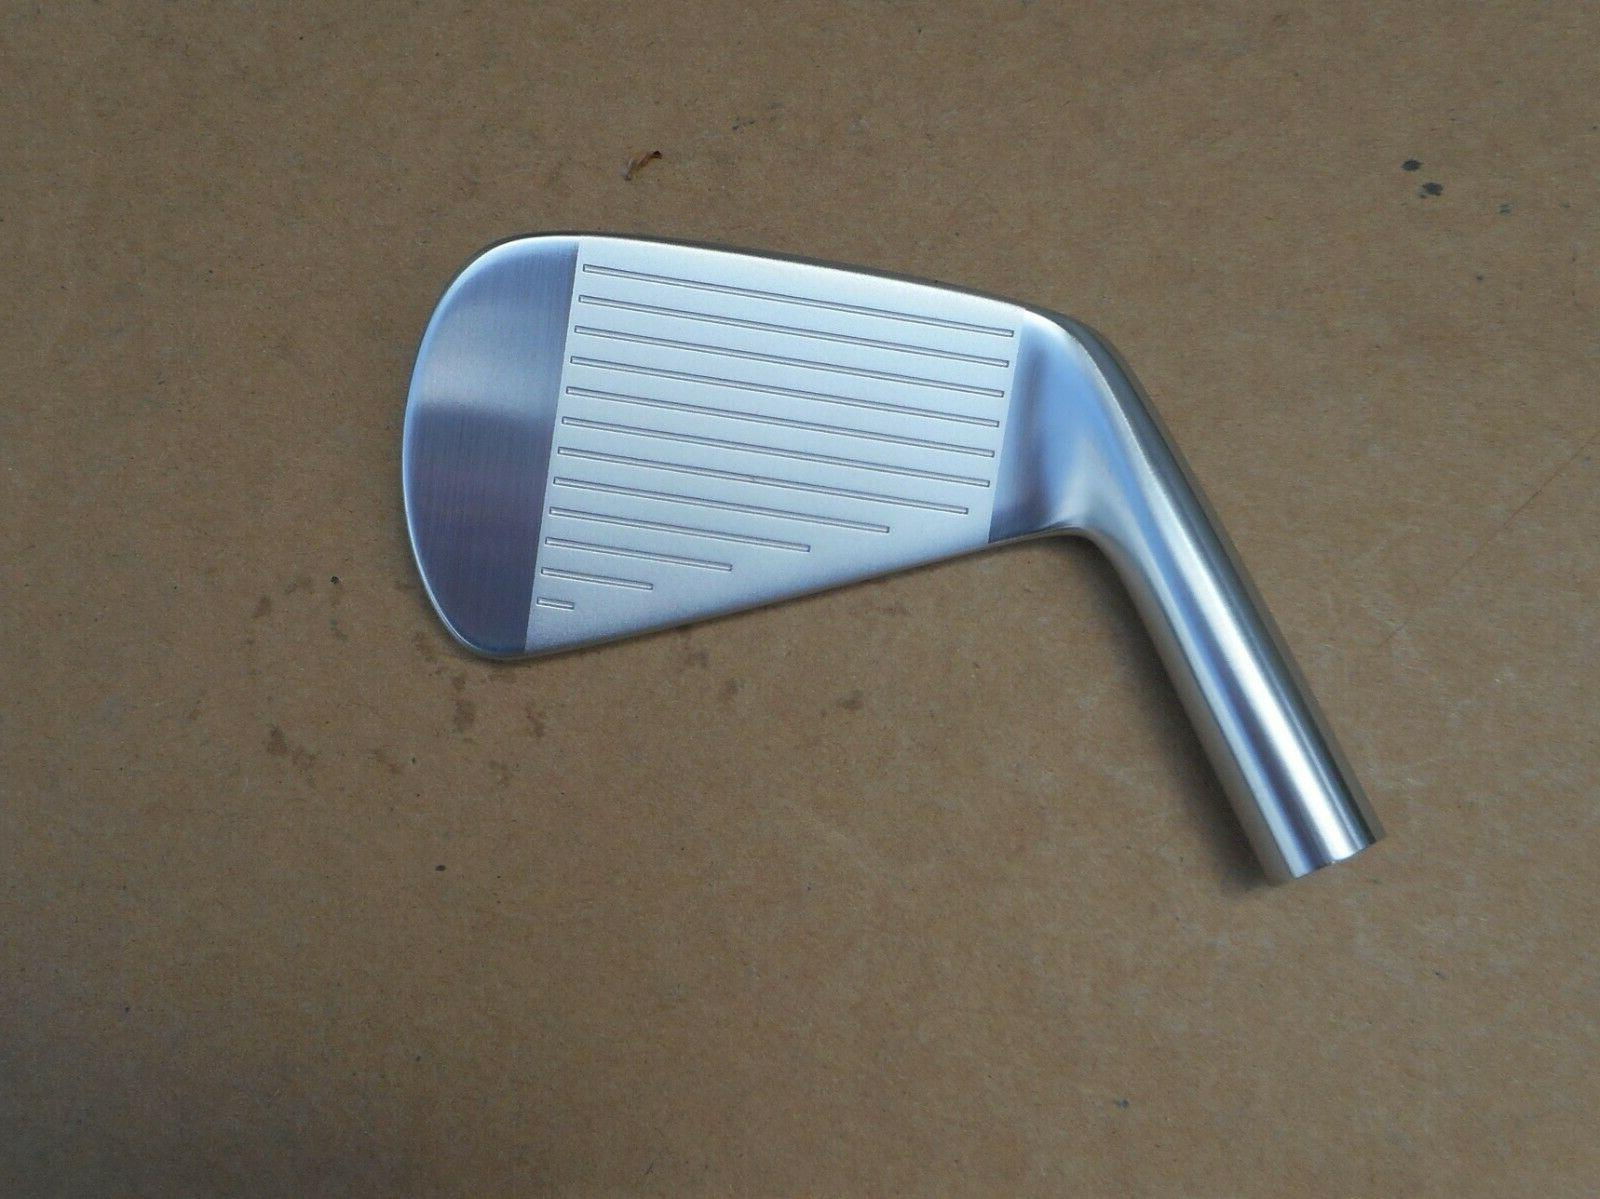 1 New Miura MB-001 3, 5, 8 iron Wedge Head only Blade